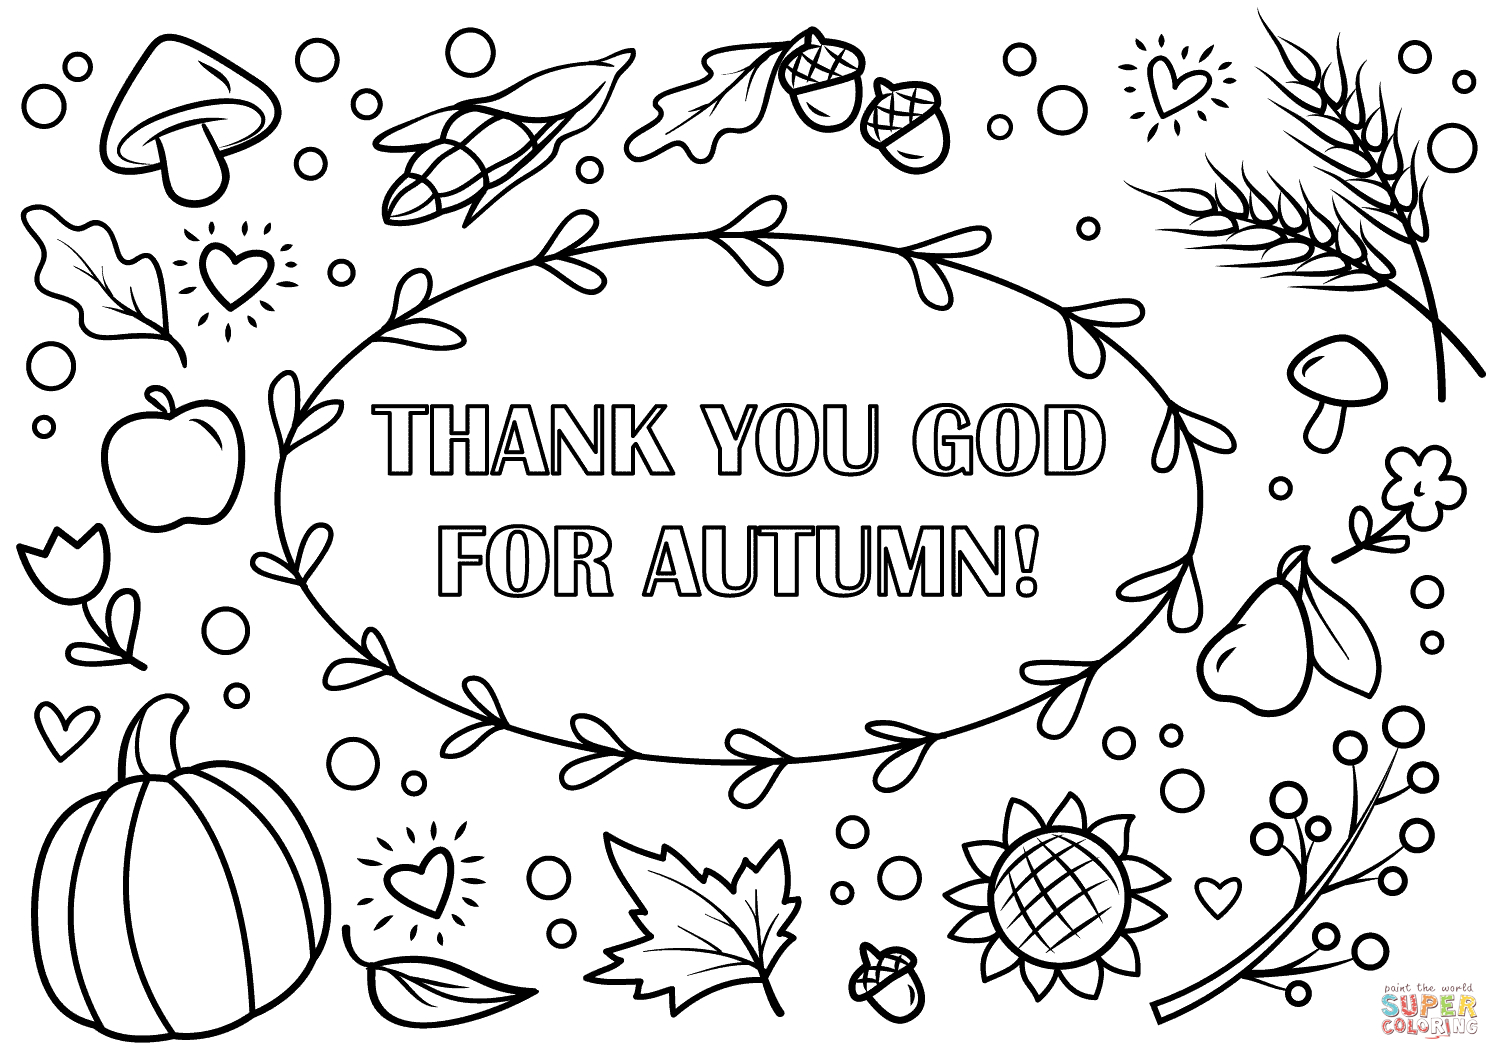 Fall Color Page Fall Coloring Pages To Print Click The Thank You God For Autumn View